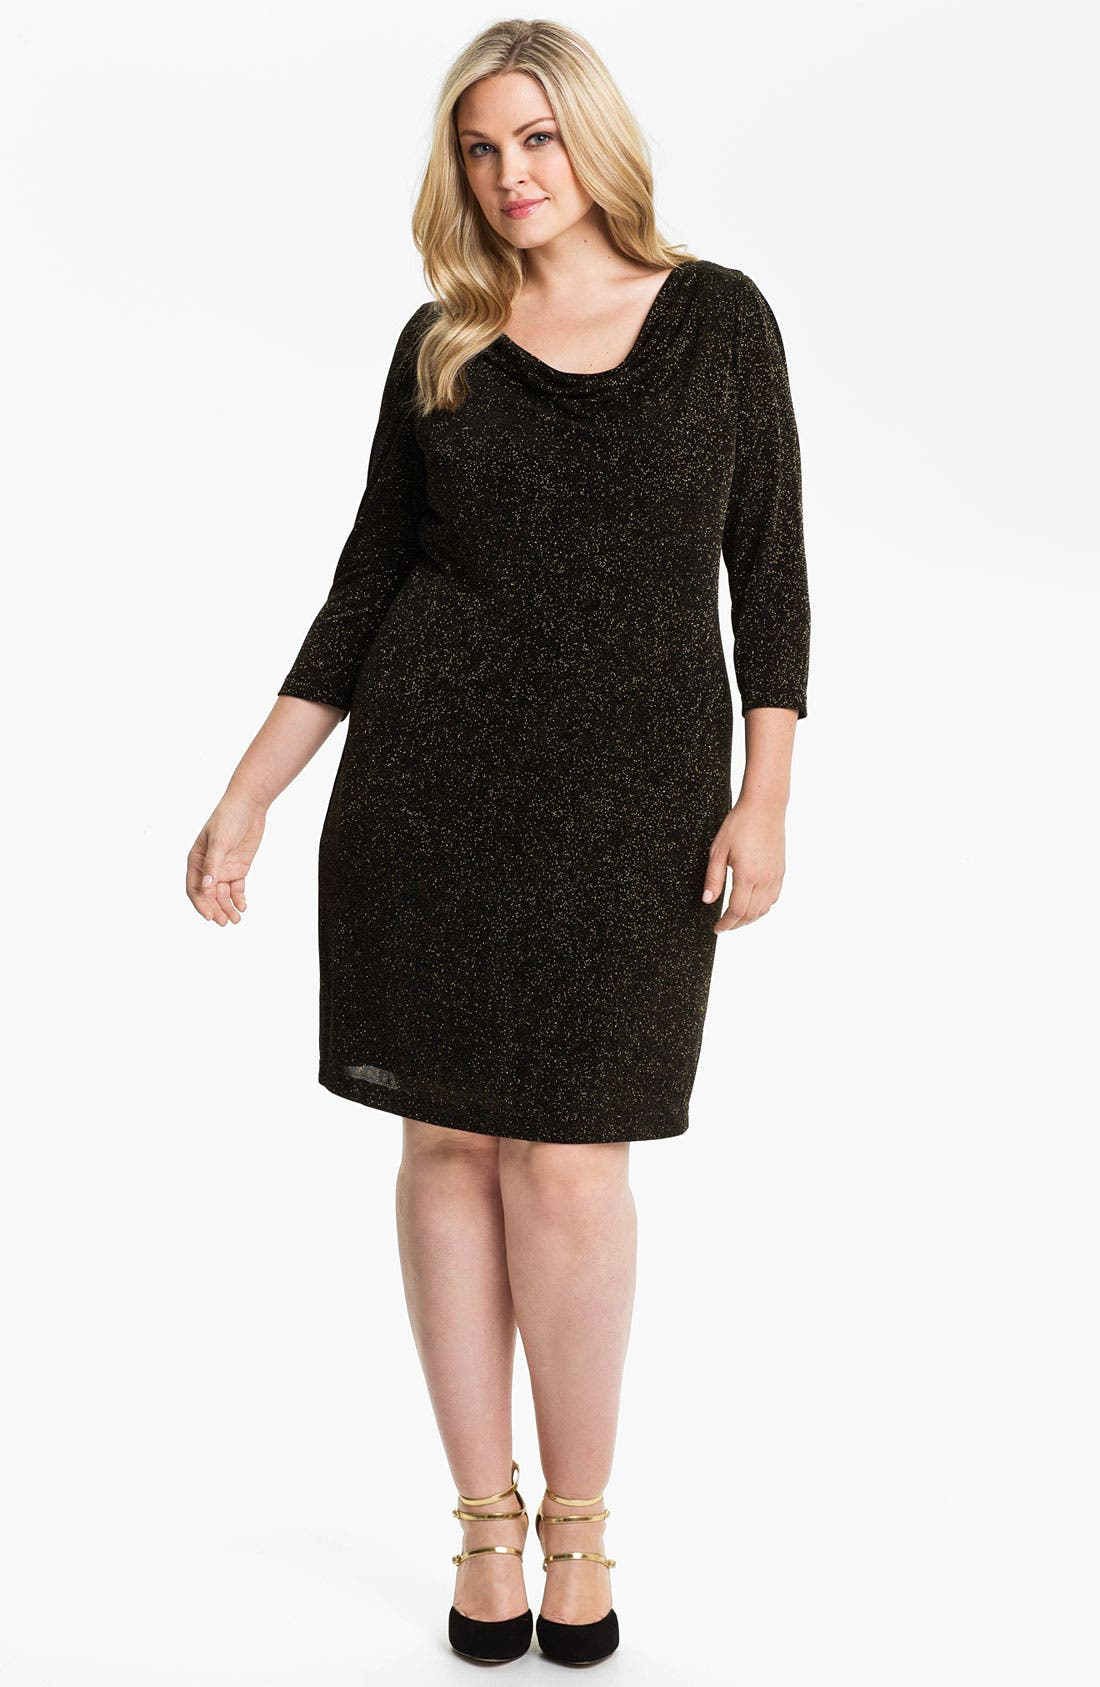 Alternate Image 1 Selected - Adrianna Papell Cowl Neck Sparkle Knit Shift Dress (Plus)